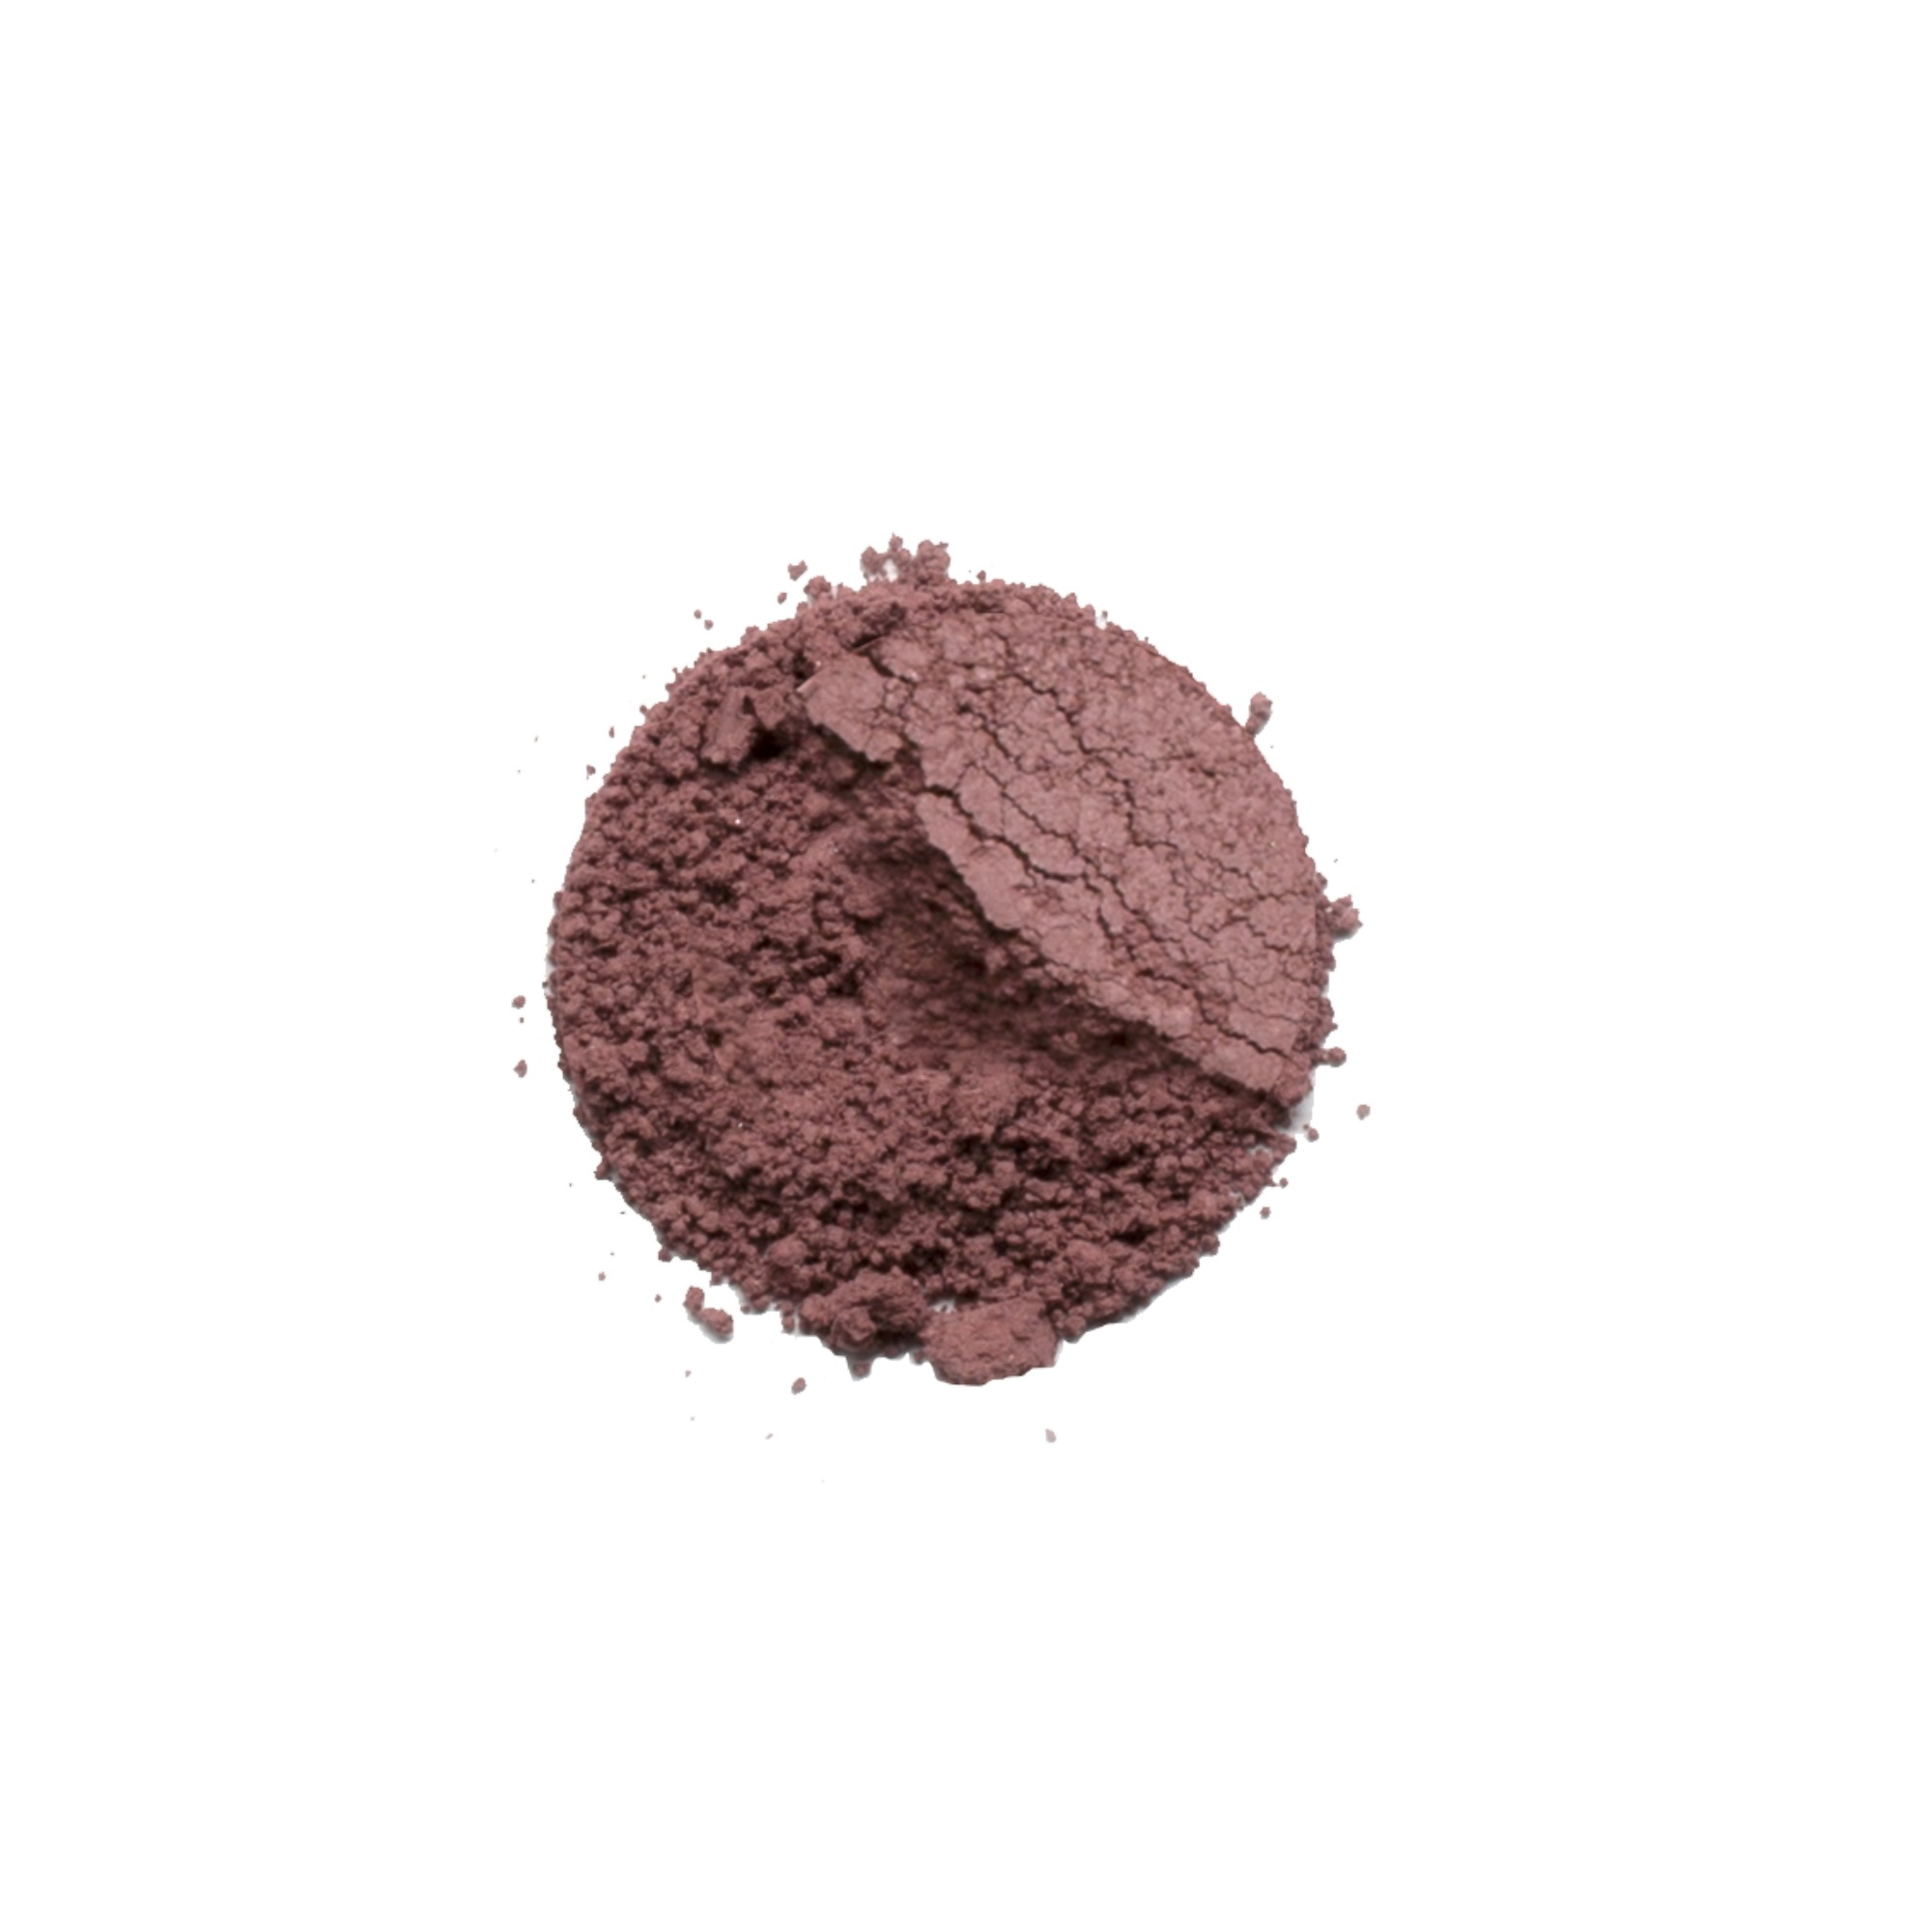 UNSCRIPTED EYESHADOW    This shade is a matte warm purple color. Savvy Minerals eyeshadows are made with a finely ground mineral base, so they have a smooth, luxurious application and high-quality ingredients. They're formulated without fillers, synthetic fragrances, or parabens. Plus, its long-lasting formula leaves you with a gorgeous look you can wear all day.   Click here   to learn more about this product.